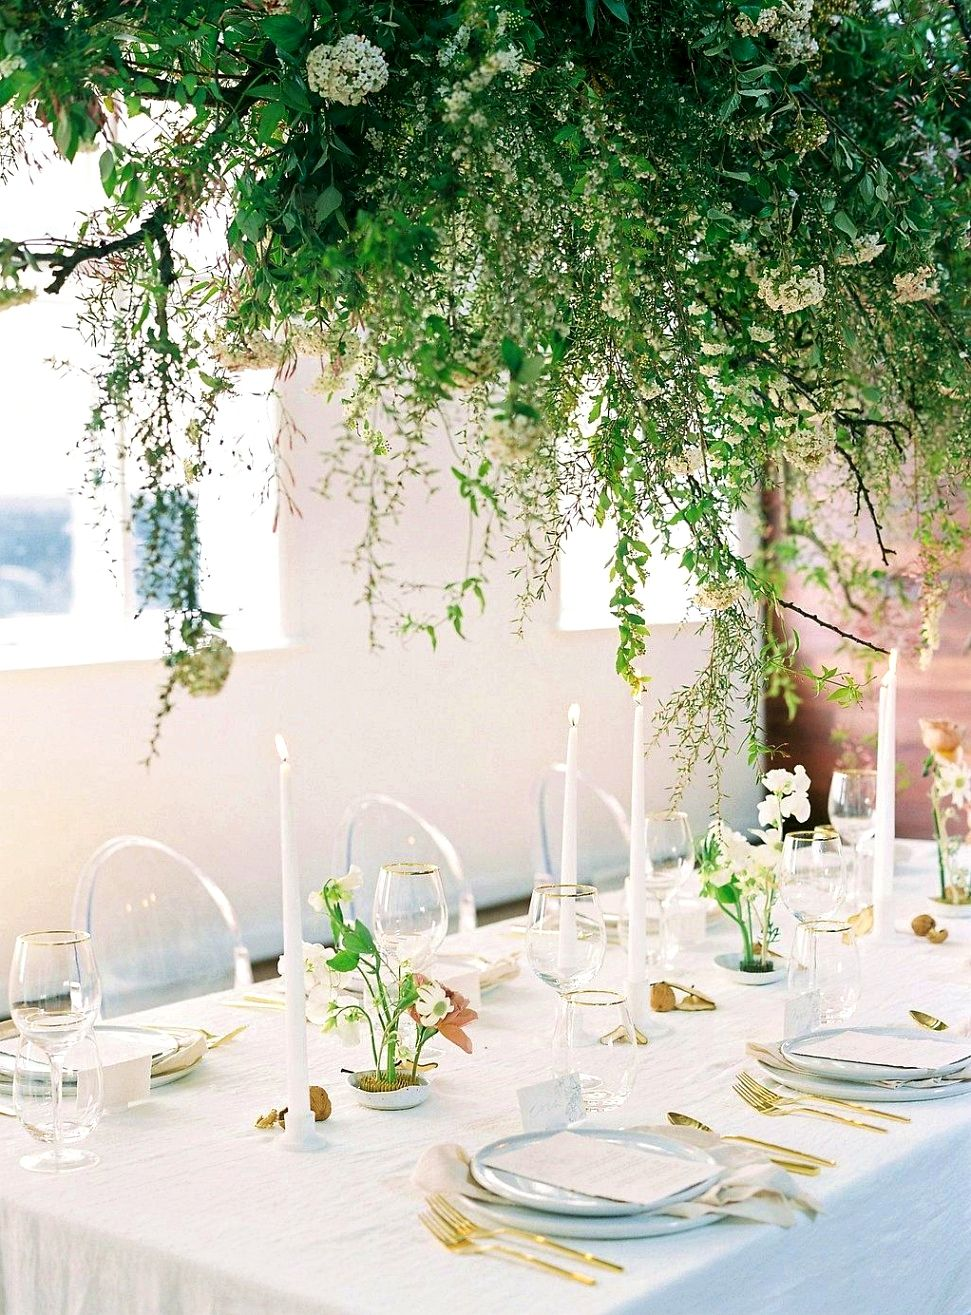 Wedding dinner table decoration the importance of wedding centerpieces to your wedding reception